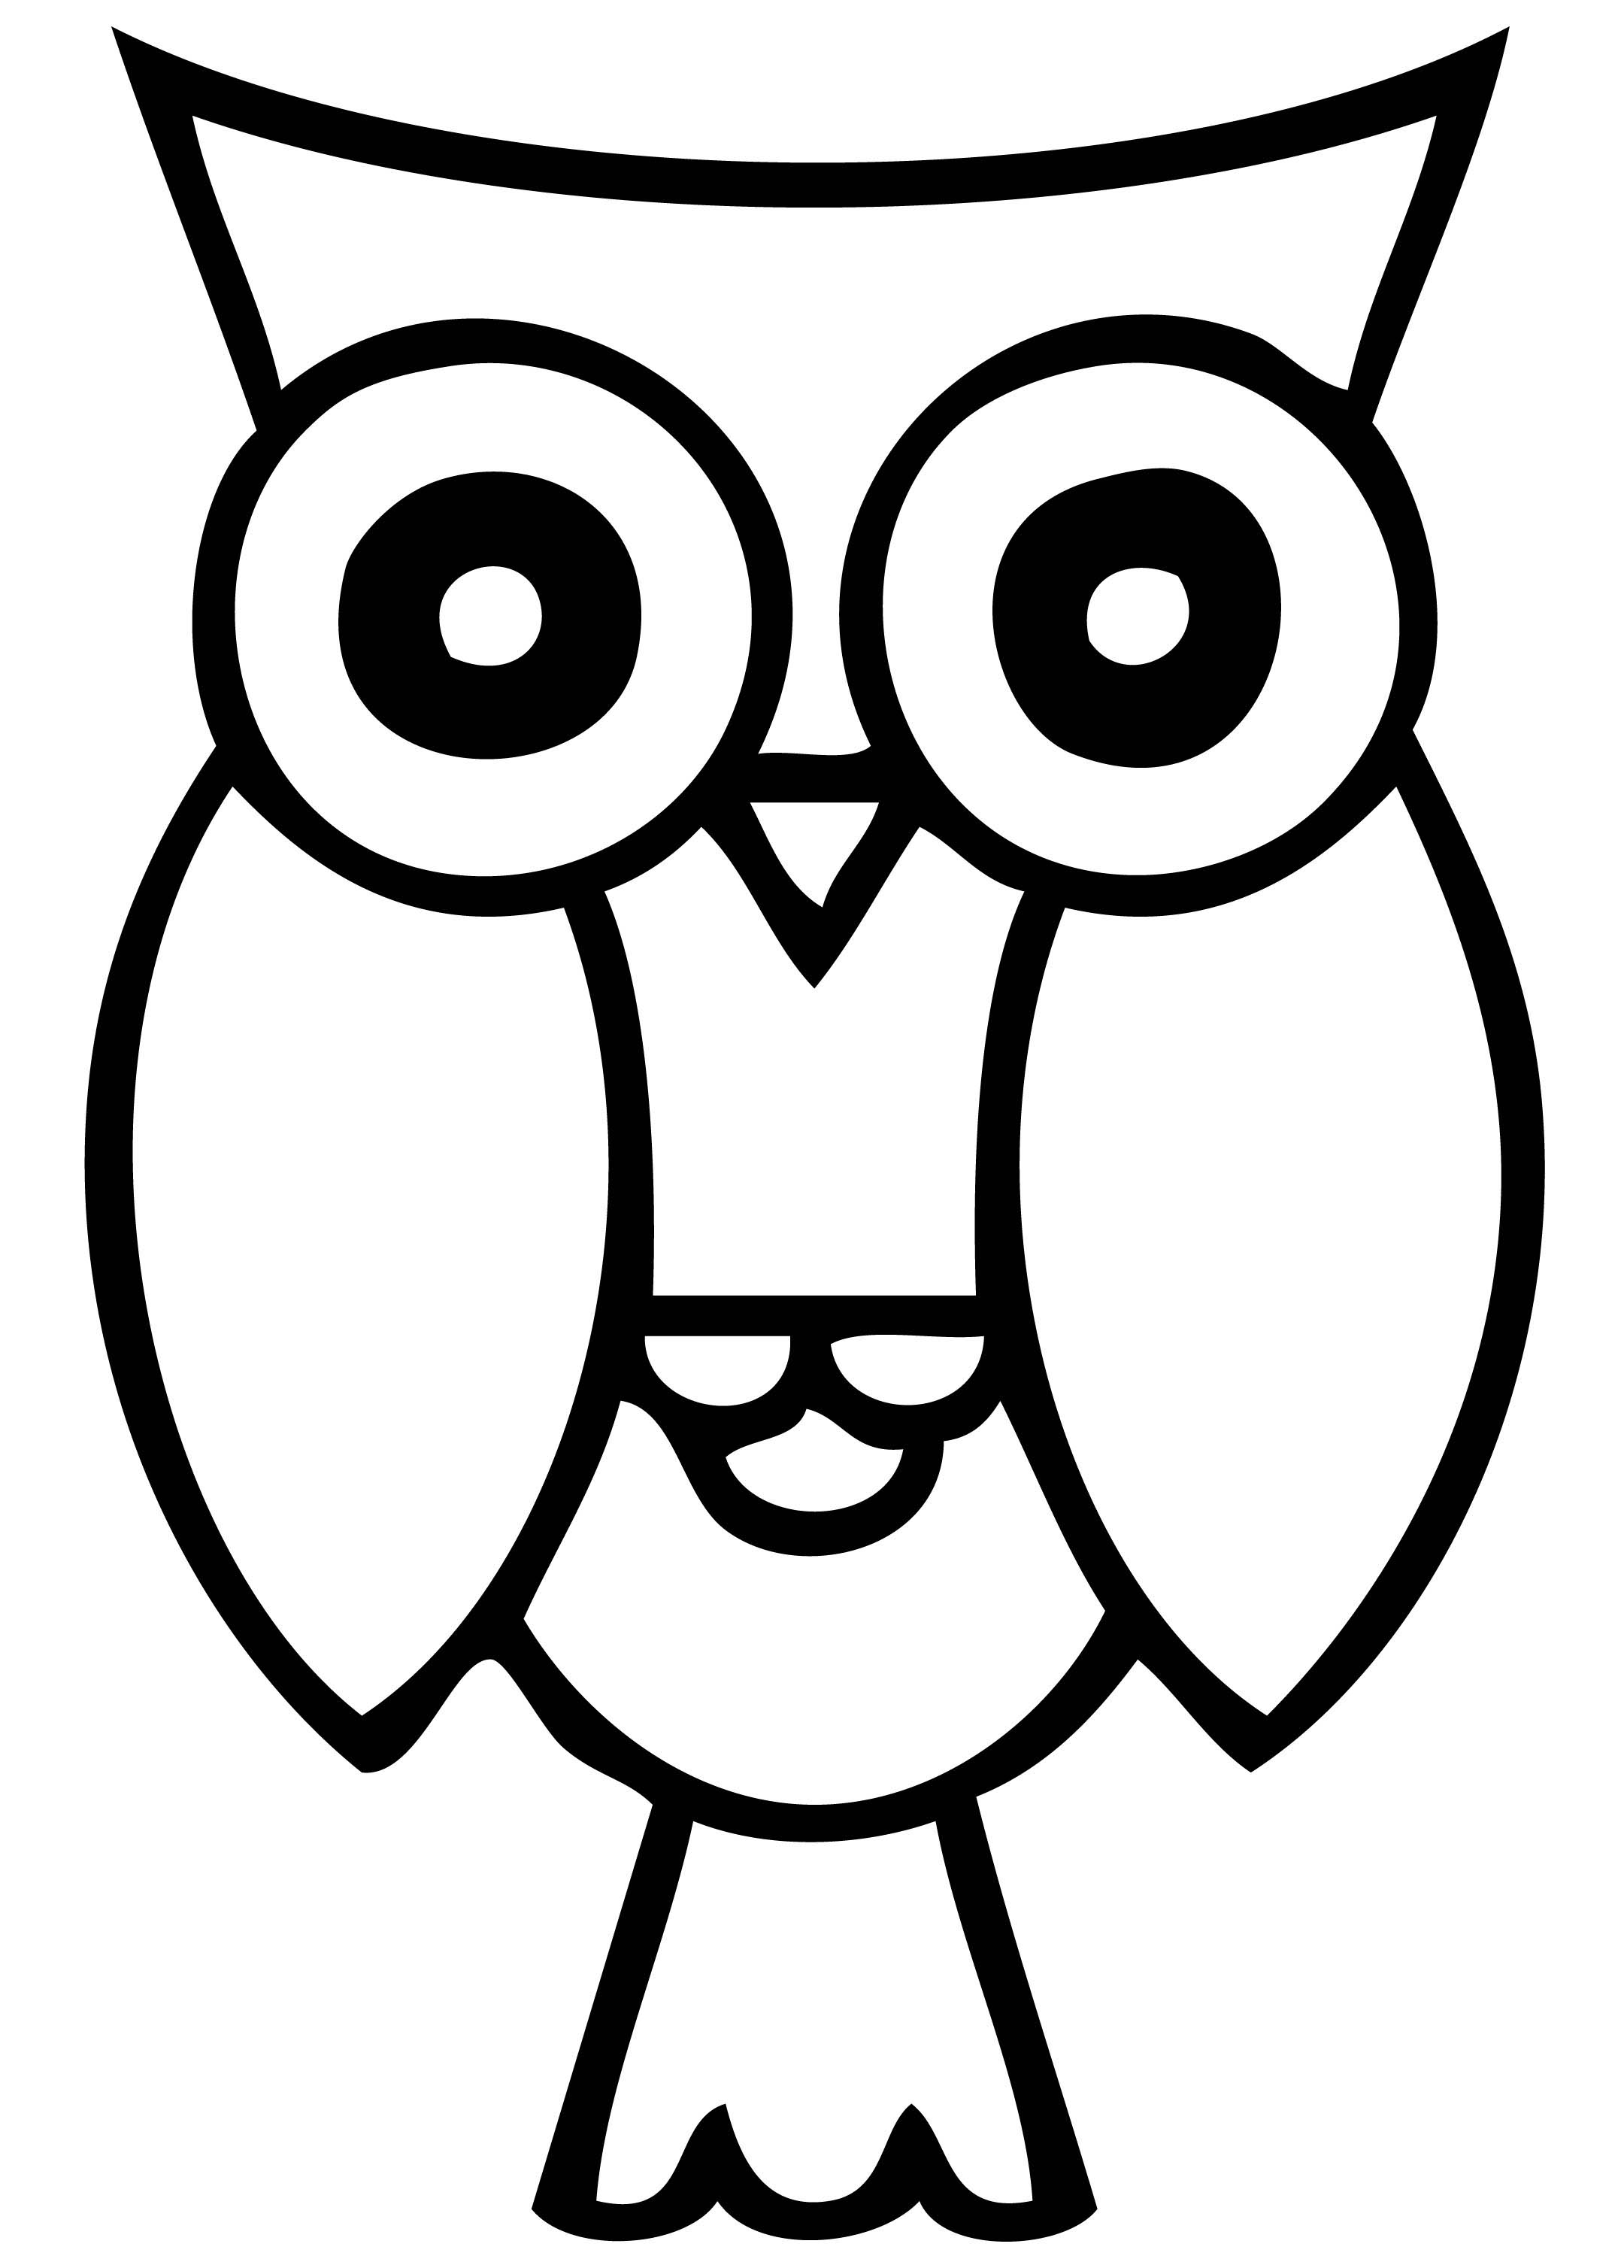 Owl Clip Art Black And White - ClipArt Best